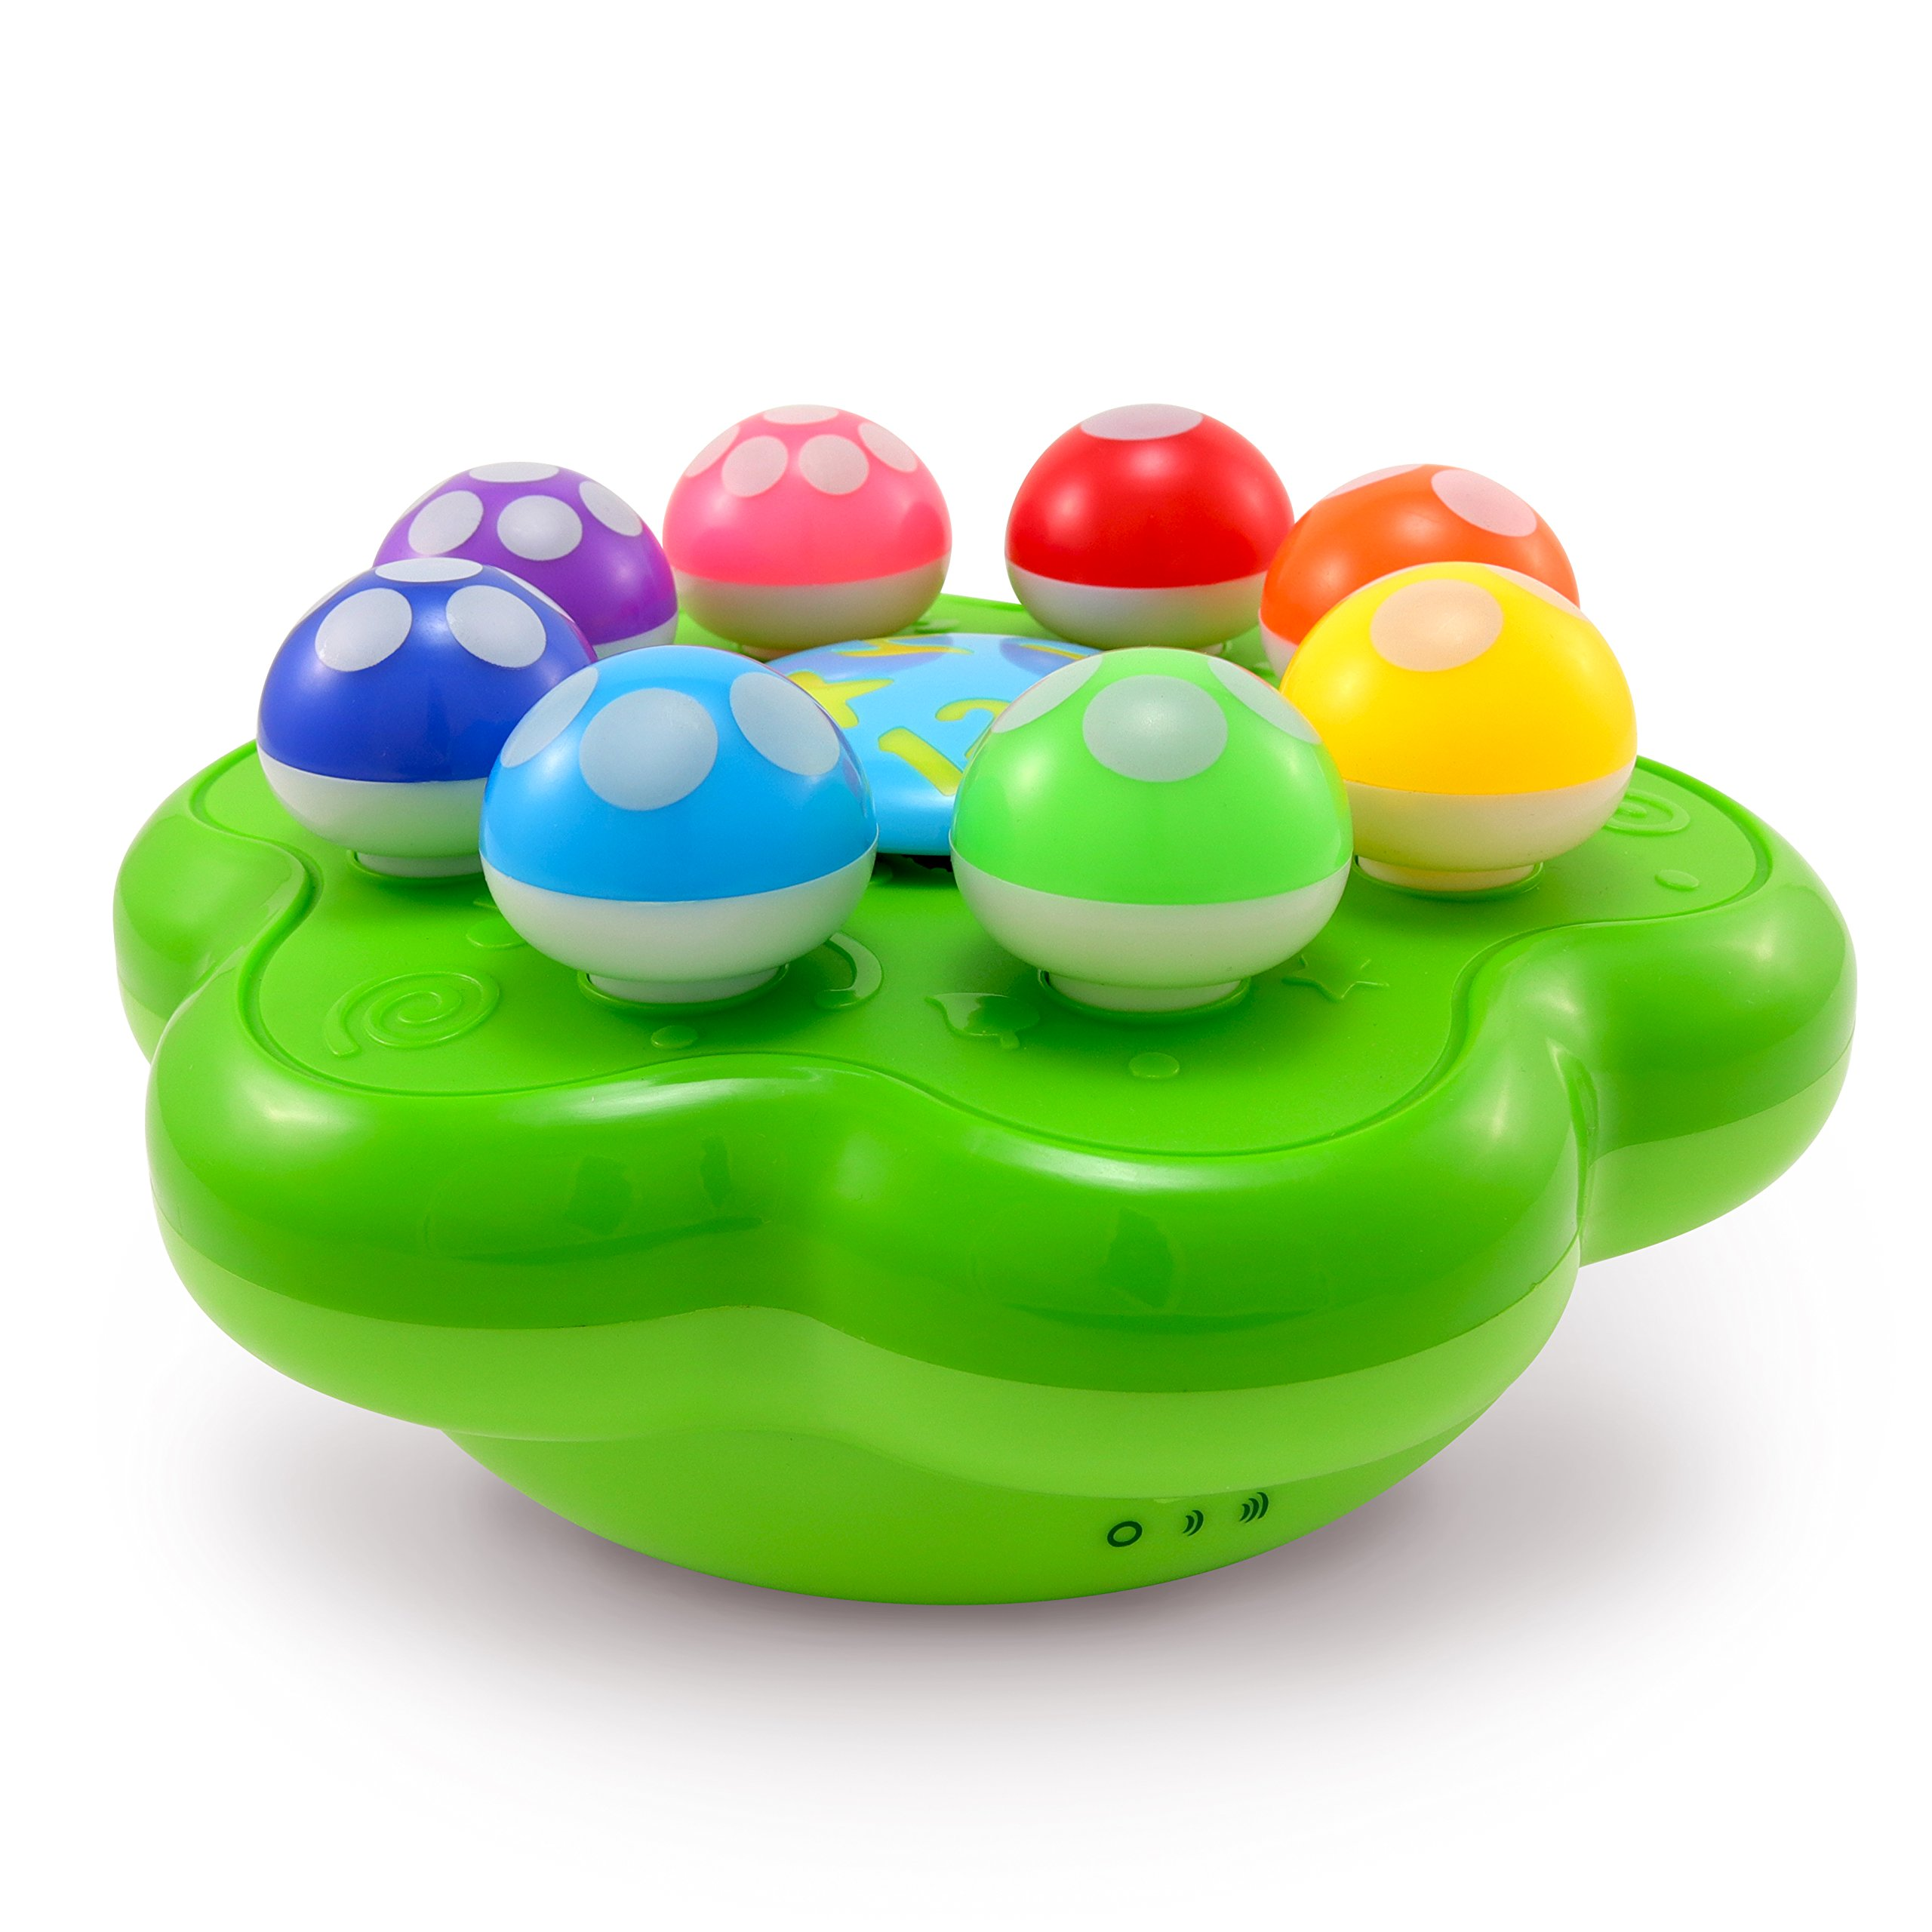 BEST LEARNING Mushroom Garden - Interactive Educational Light-Up Toddler Toys for 1 to 3 Years Old Infants & Toddlers - Colors, Numbers, Games & Music for Kids by BEST LEARNING (Image #5)